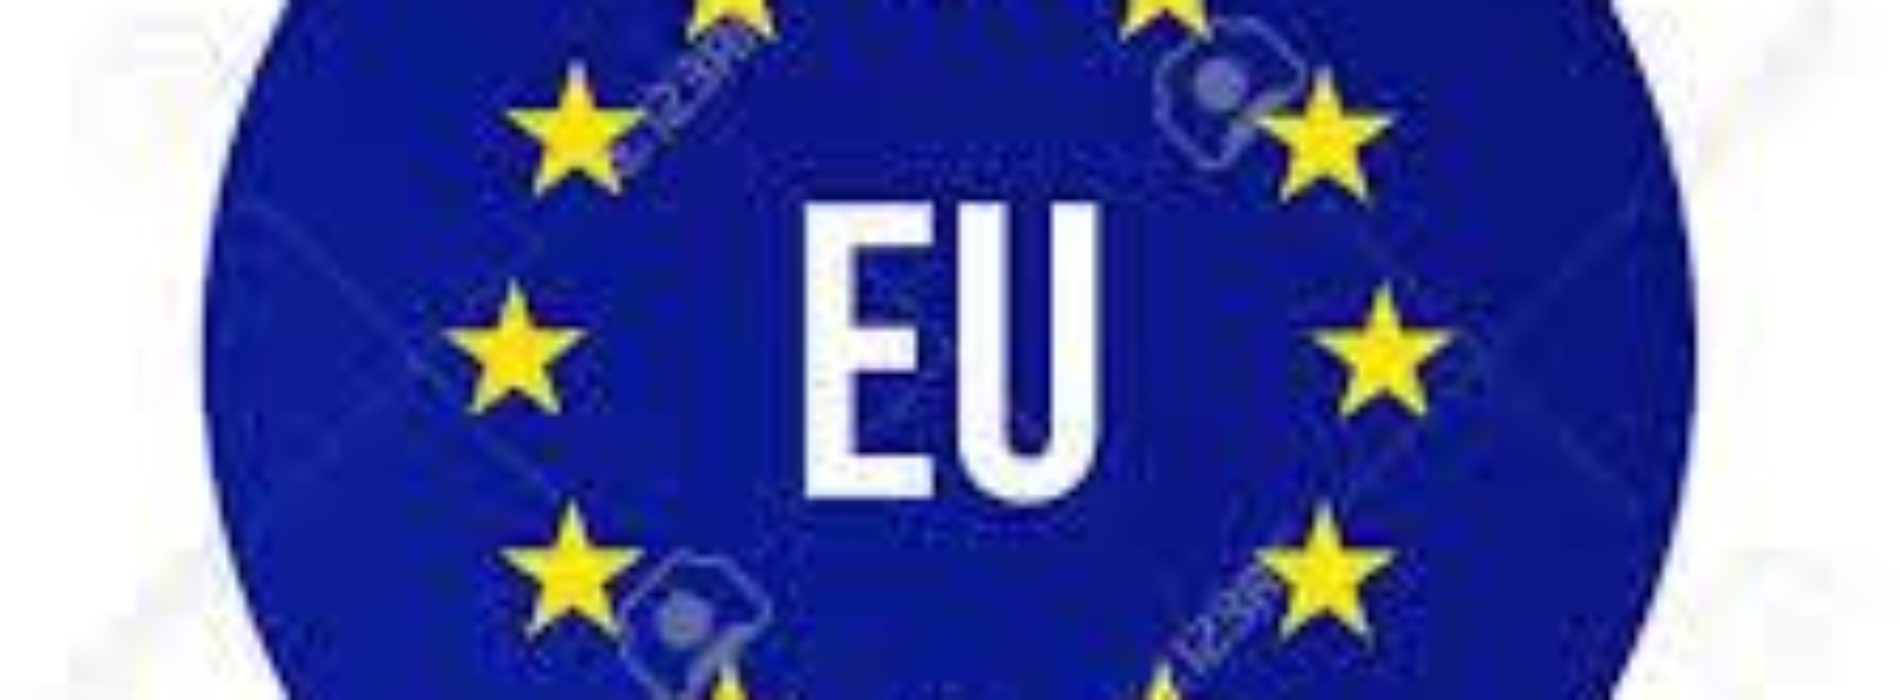 EU donates COVID-19 Personal Protective Equipment to drug treatment centres